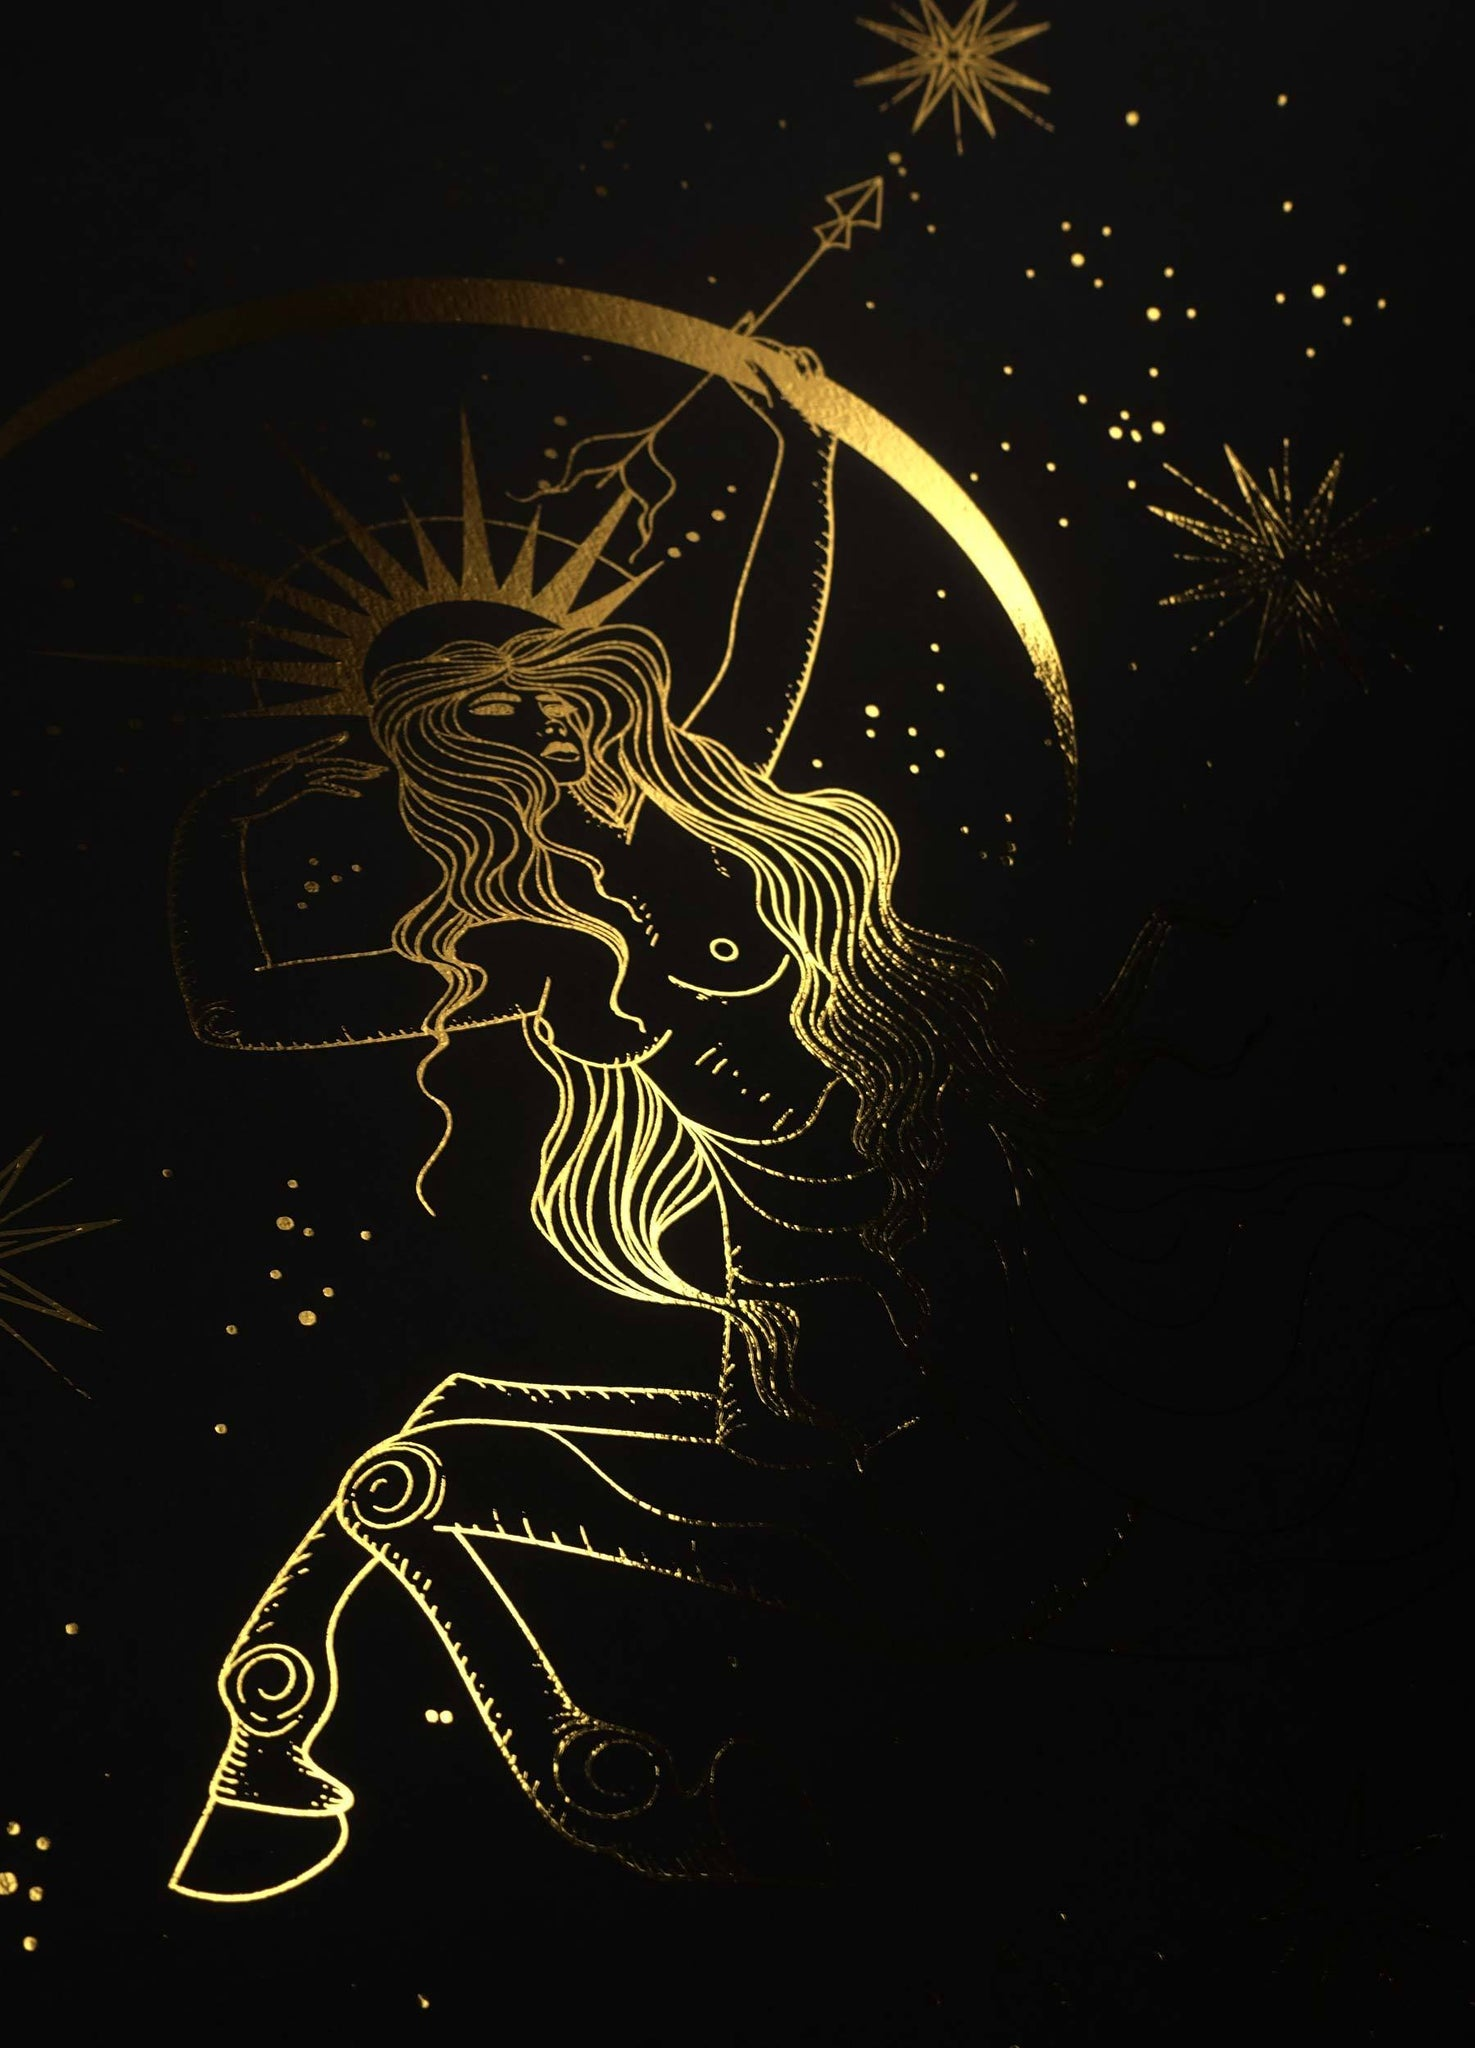 Sagittarius Goddess gold foil art print on black paper by Cocorrina & Co Design studio and shop